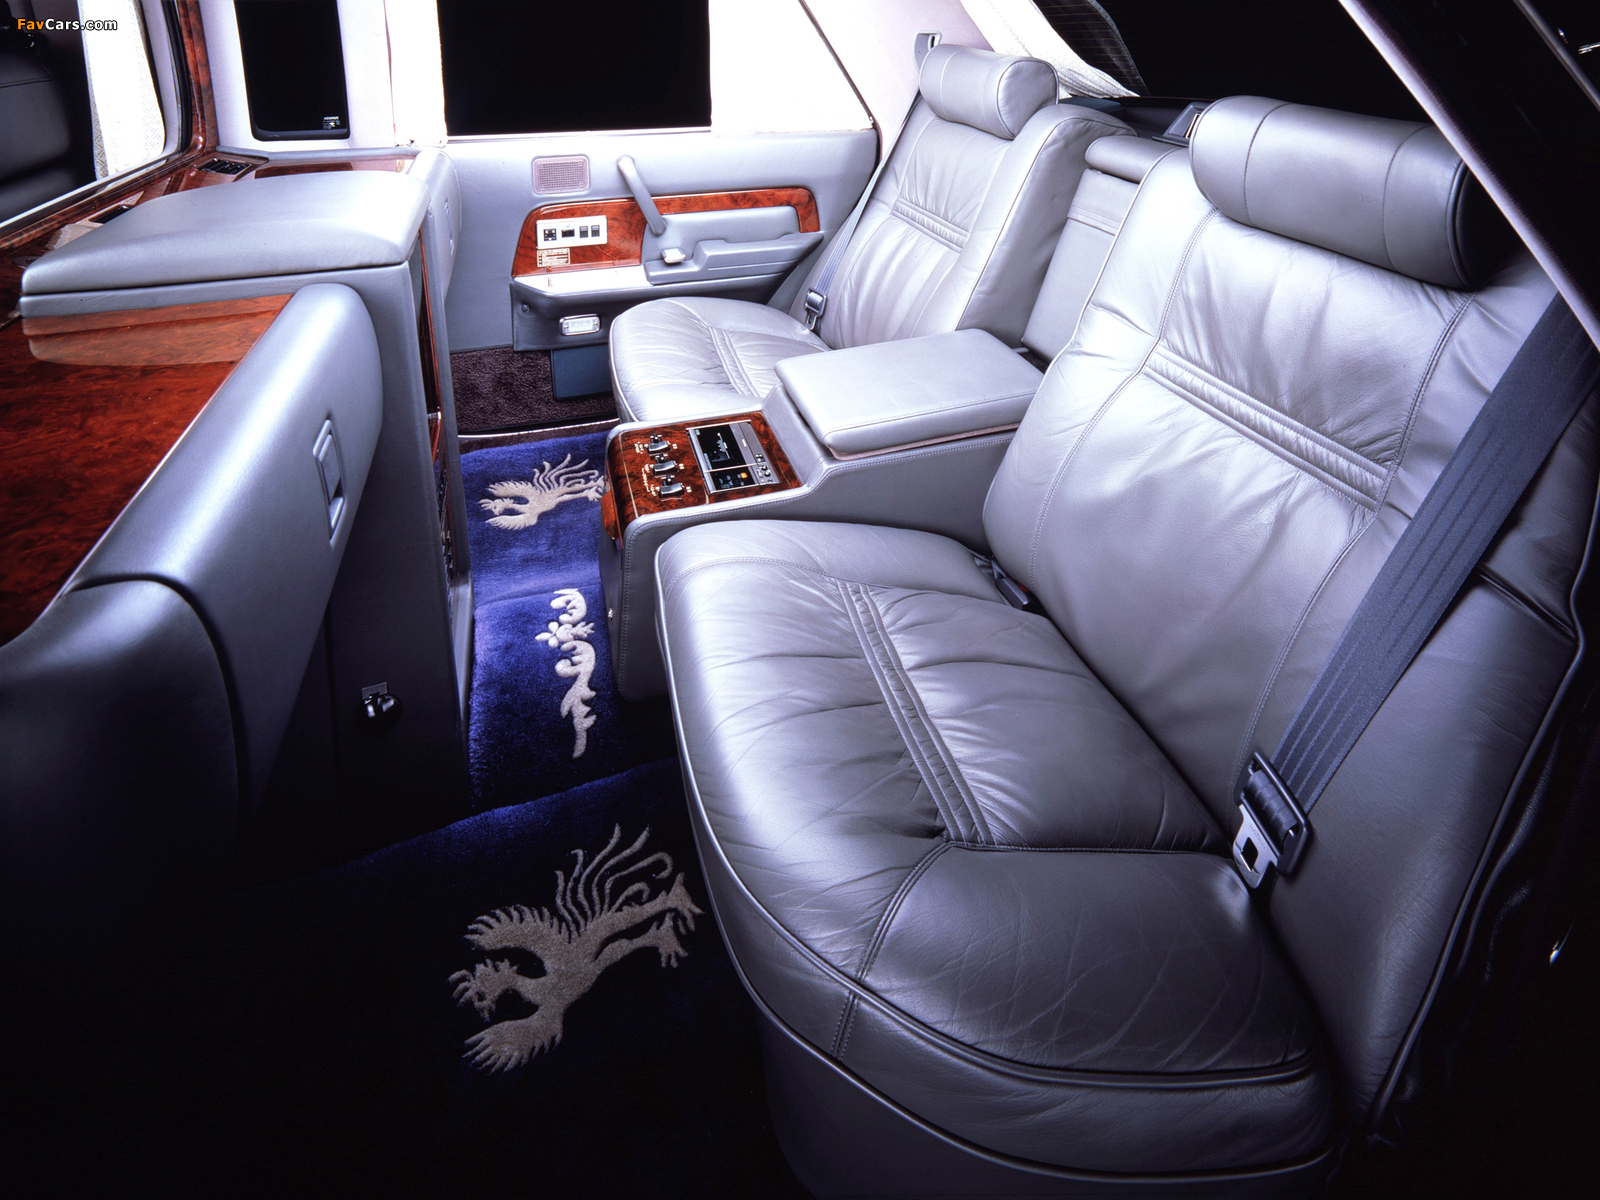 toyota century limousine vg40 1989 97 wallpapers 1600x1200. Black Bedroom Furniture Sets. Home Design Ideas